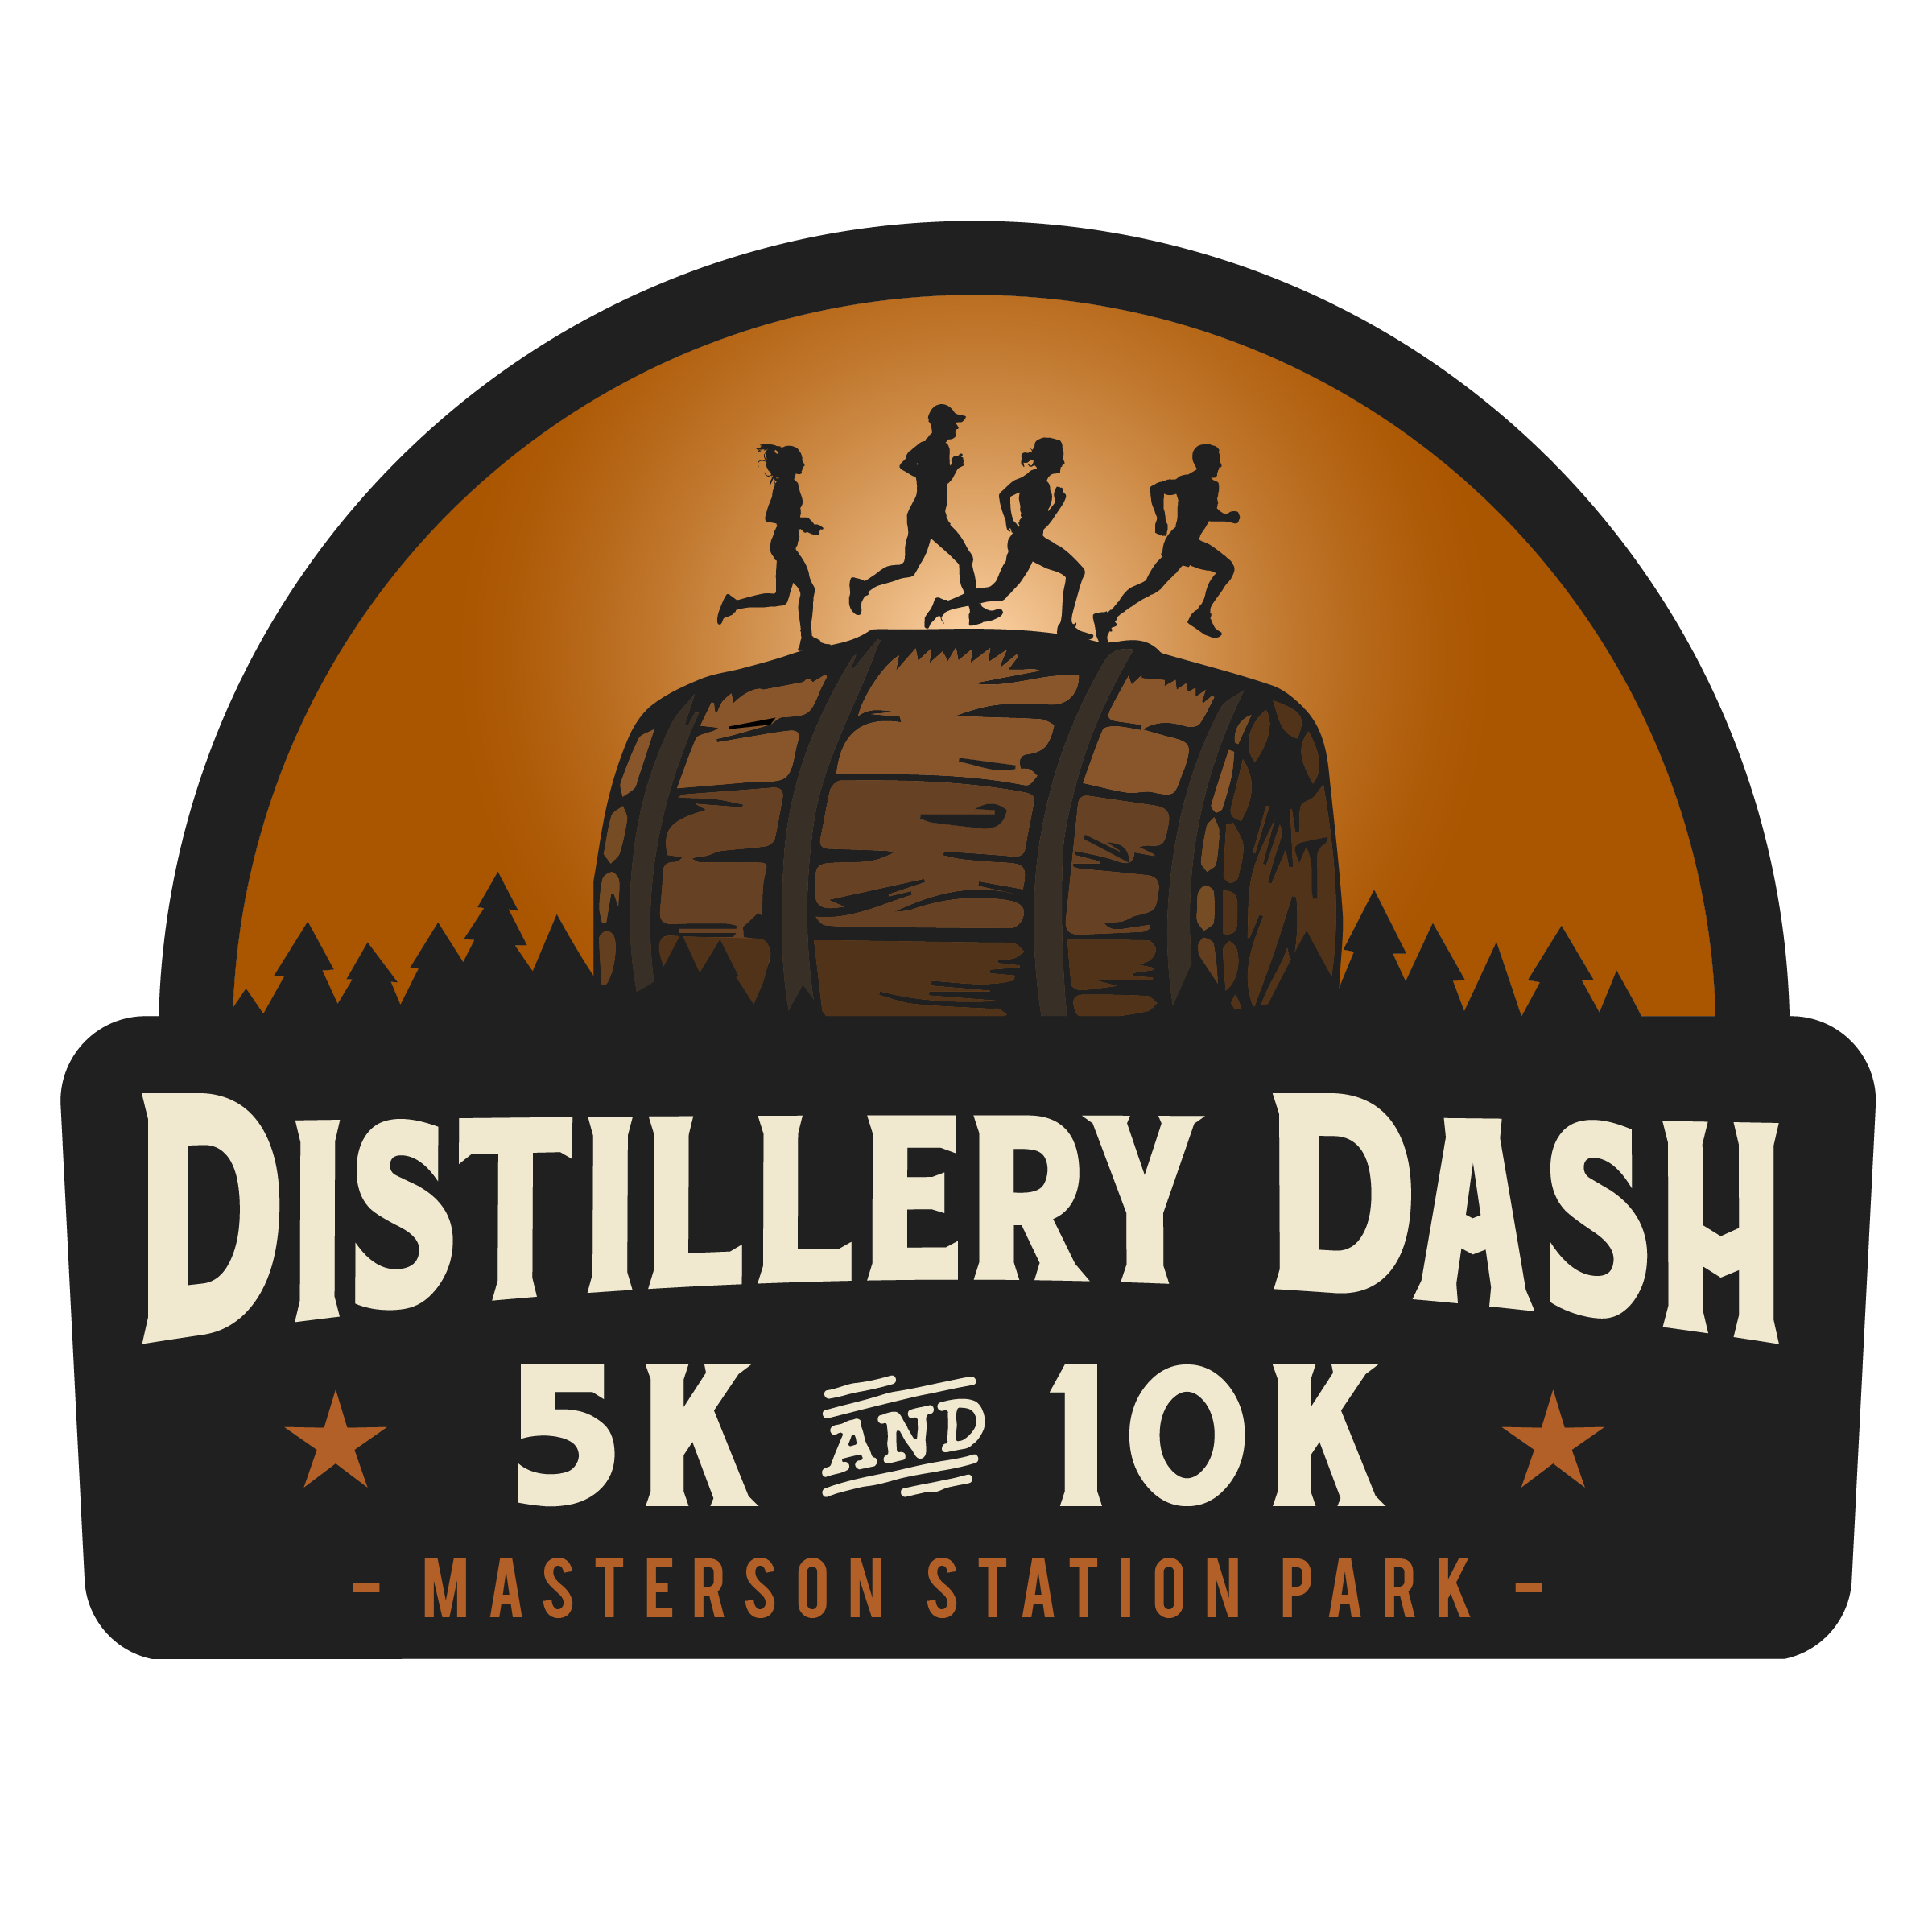 Distillery Dash 5k/10k -  July 12 - The Distillery Dash will feature 5k and 10k cross country race options at beautiful Masterson Station Park. Participants will receive a race t-shirt, branded bourbon glass finisher's award, and 3 bourbon-tasting tickets to use at the race afterparty. If participants are under 21, they will receive all portions of the finisher award except for the tasting tickets. Lexington Distilling and Brewing Company will be on-site for the after party allowing participants to redeem their tickets for bourbon samples of their various bourbon varieties. The afterparty will run until 10:00 PM, so hang around for live music, bourbon tastings, drink sales, food trucks, and a great time! Register for all three races in the series for a special finisher's award at the end of the series!The 5k will be open to walkers, but we will be enforcing a cutoff pace for the 10k due to safety concerns with post-sunset light conditions.Register early to take advantage of our lowest price!